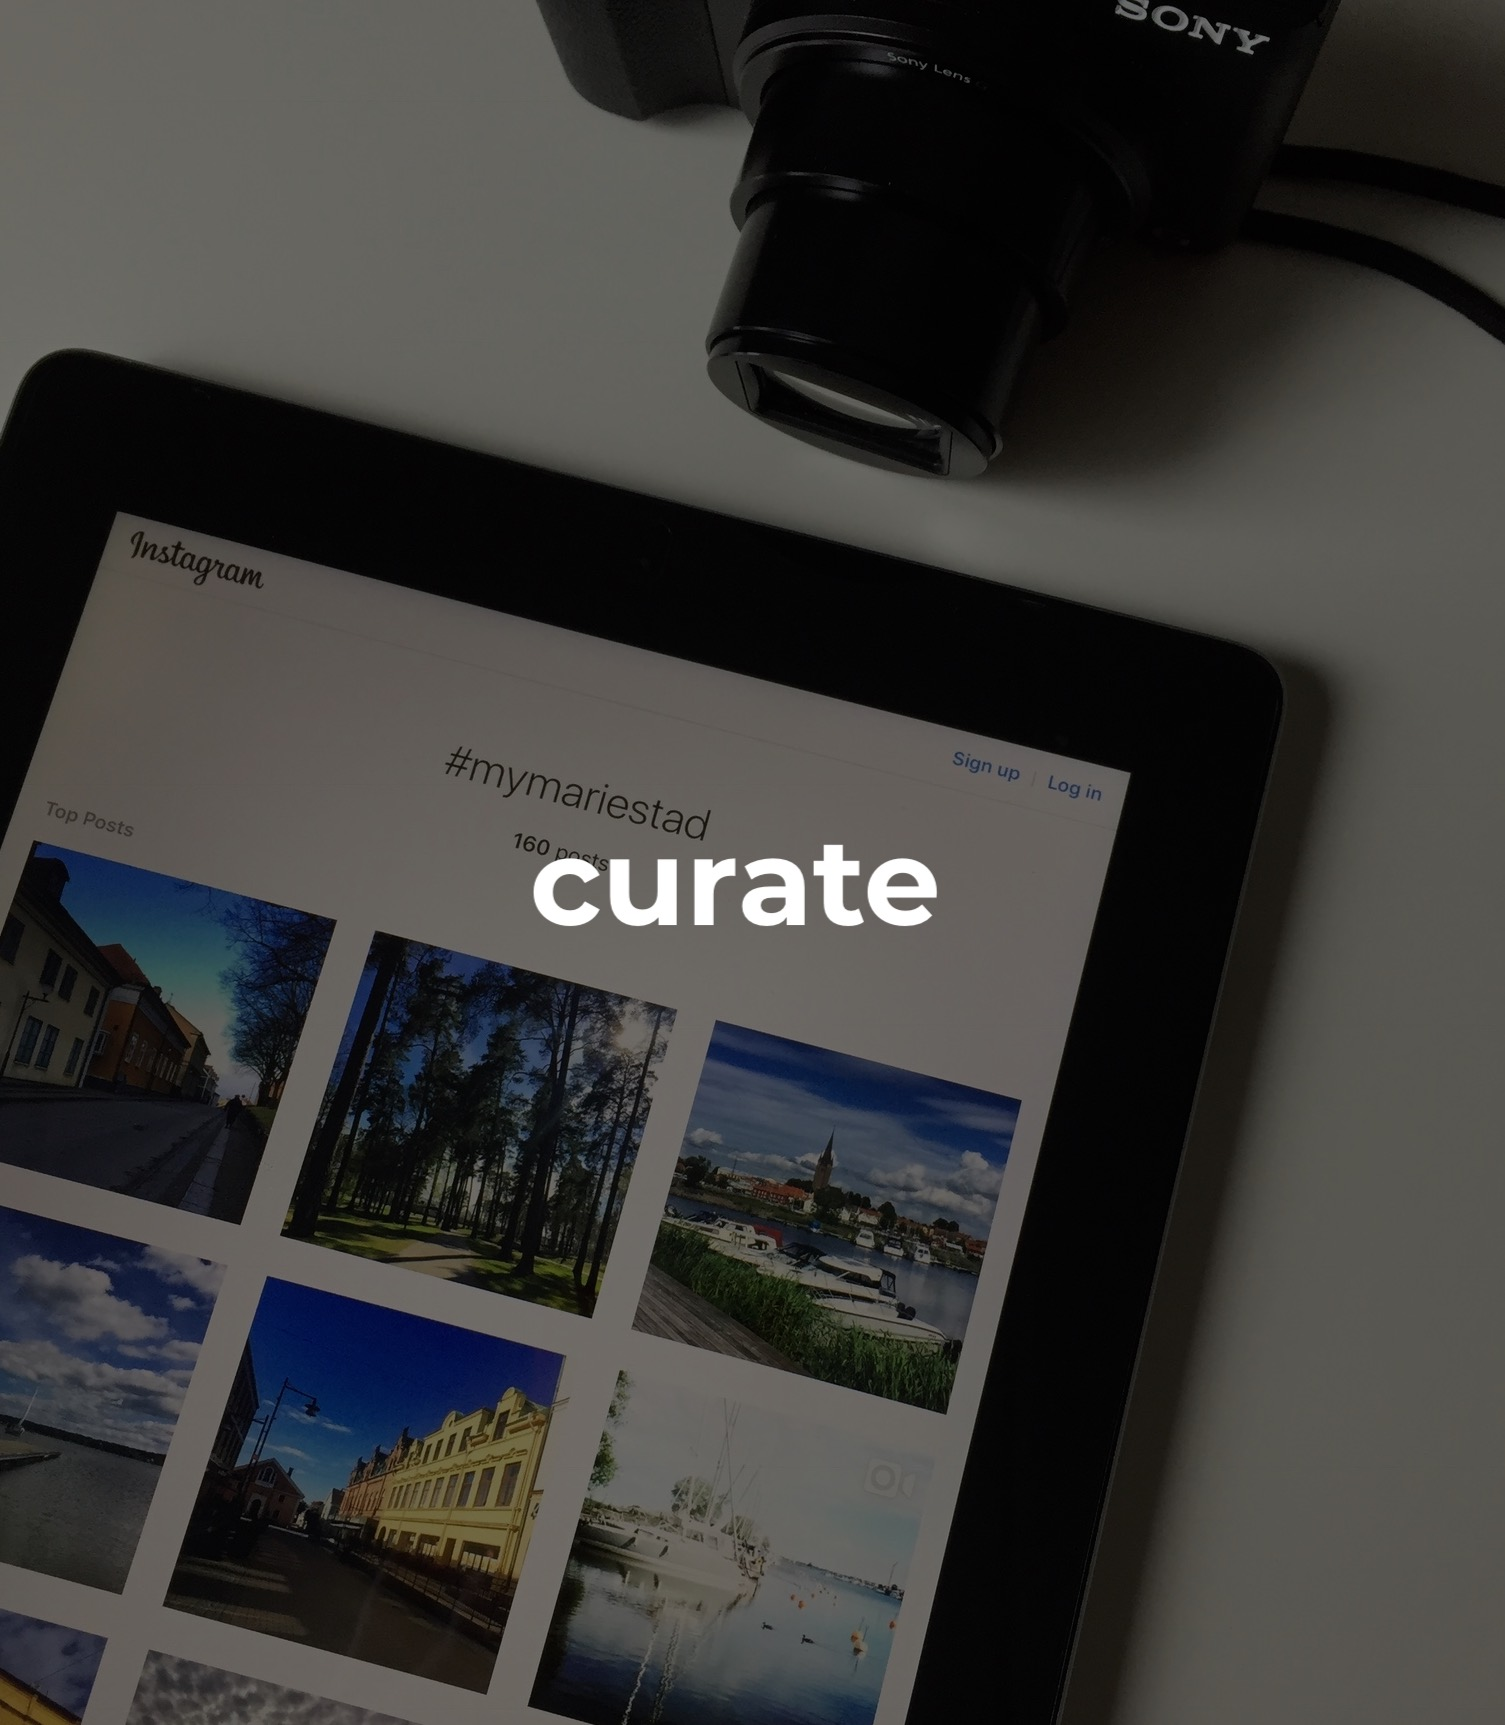 #curate   this investment combines the first two packages and adds sharing original content, engaging more with the followers, creating unique hashtags and video snippets or going live.